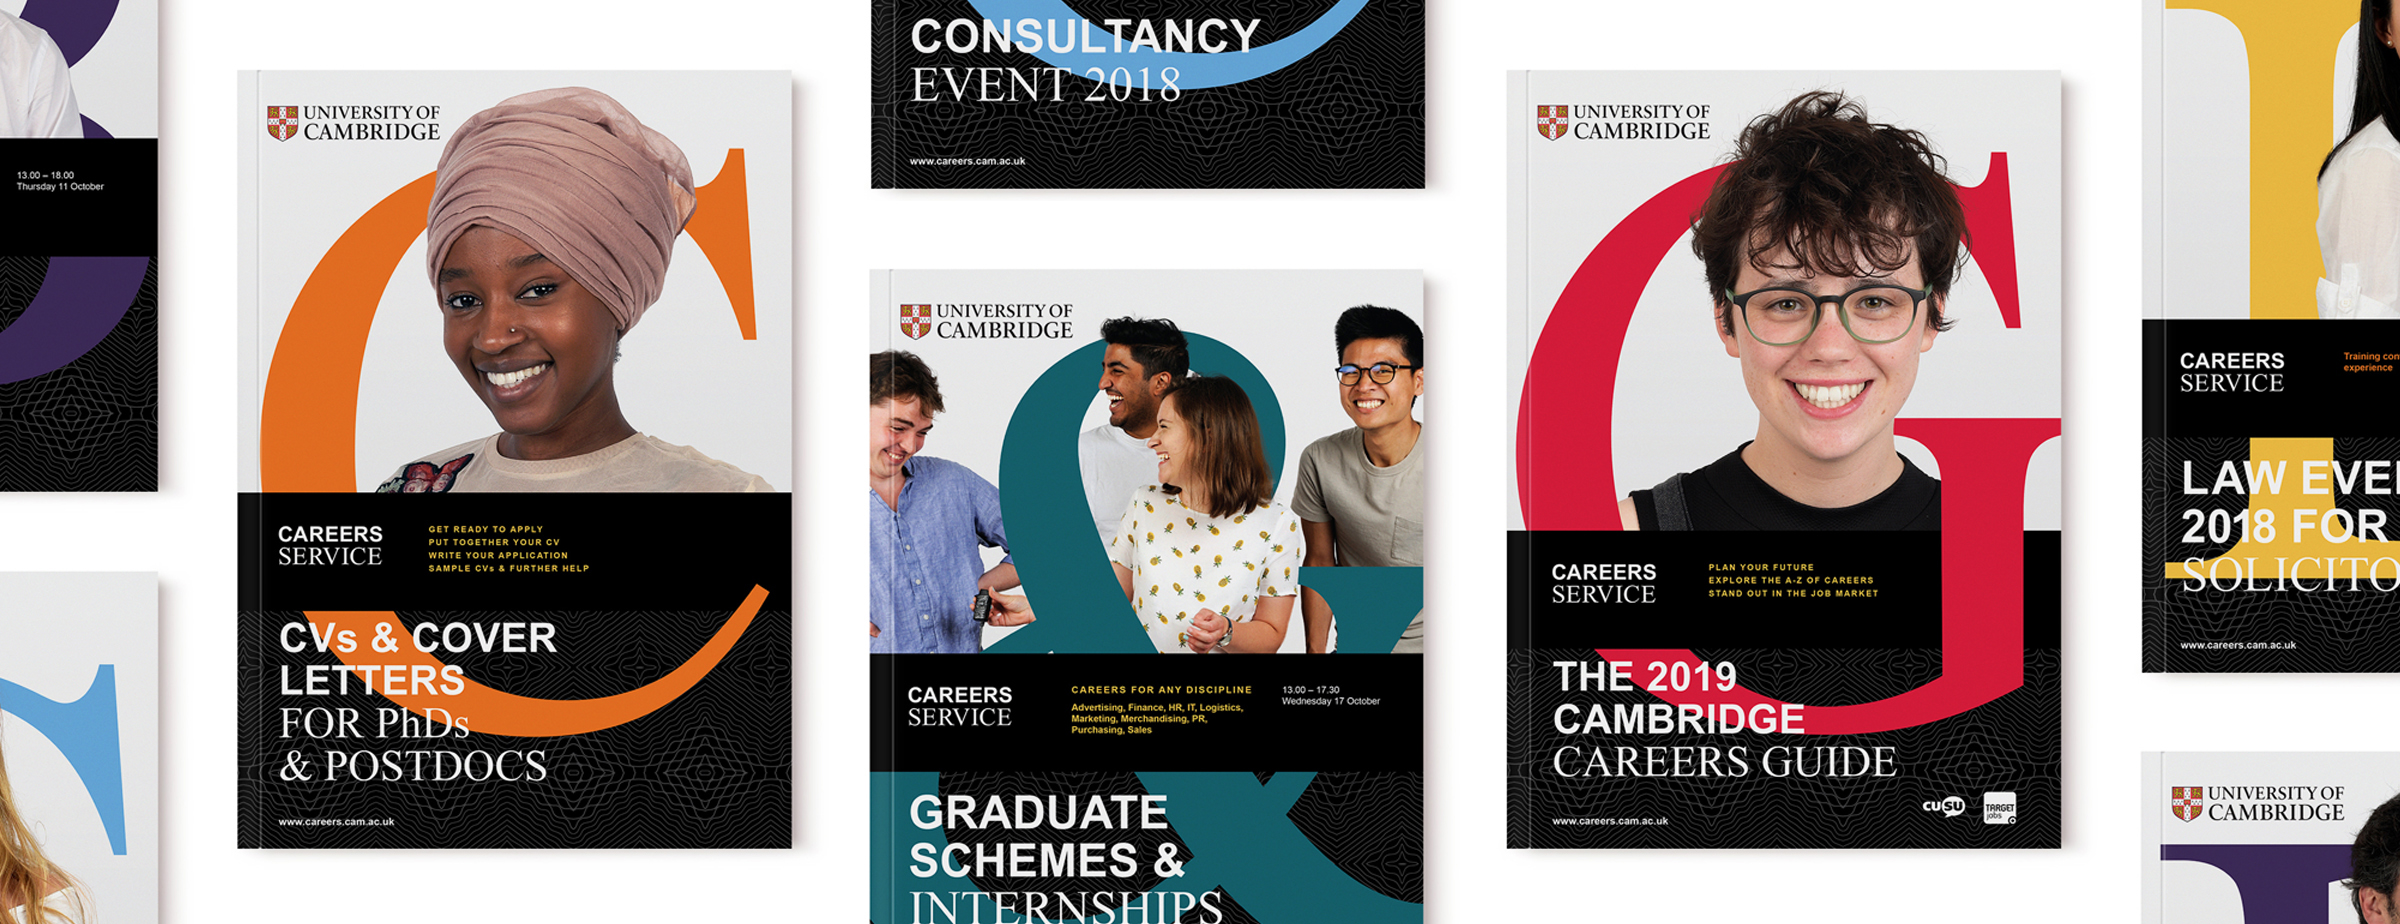 University of Cambridge case study